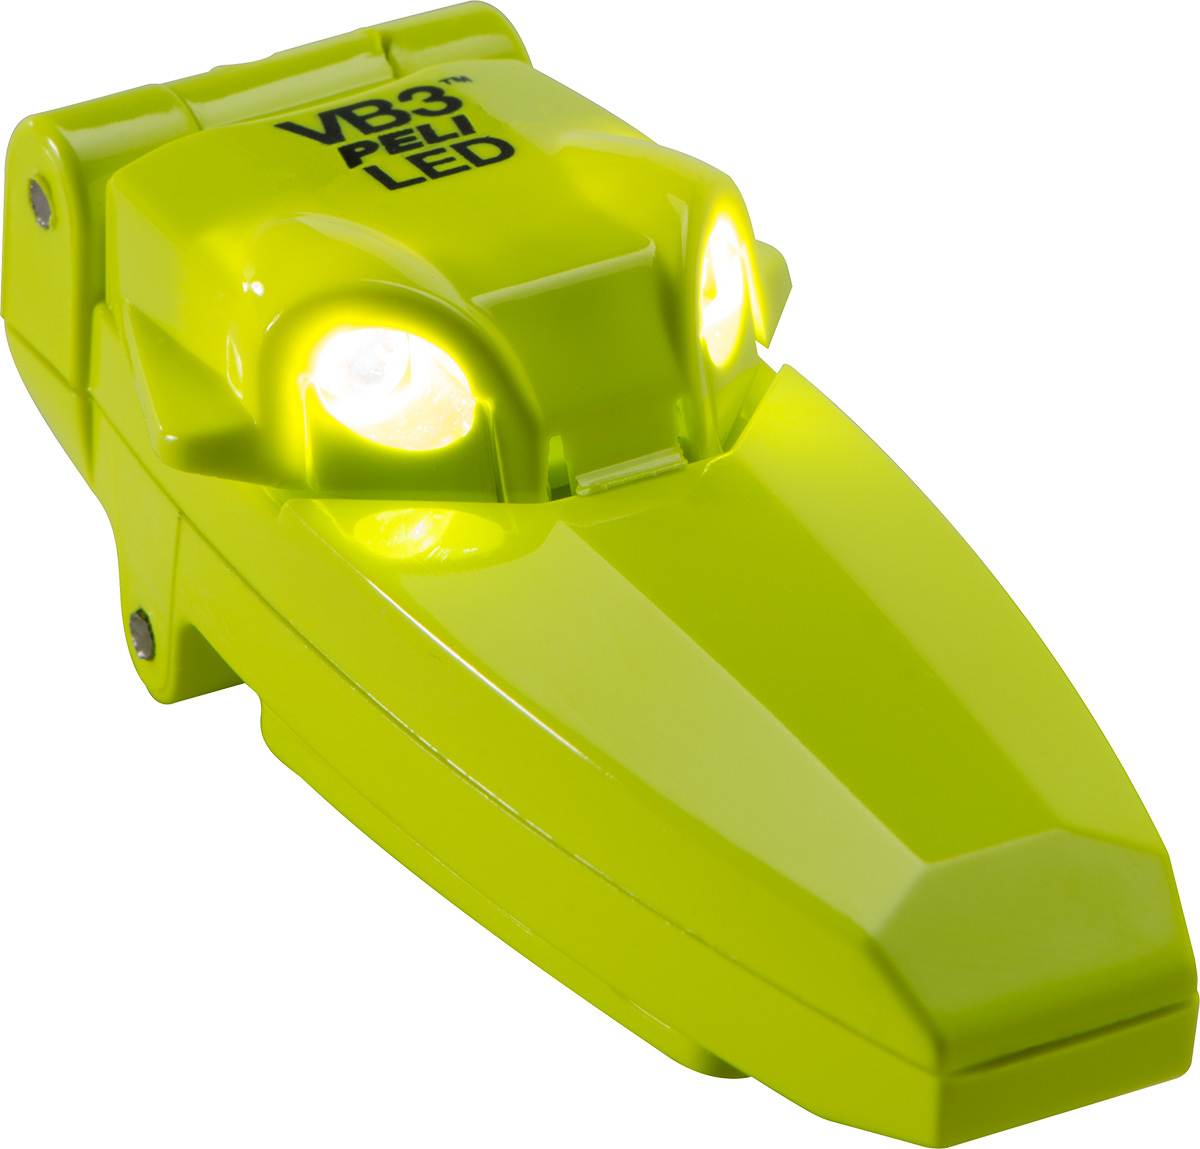 peli 2220 light zone 1 approved clip torch